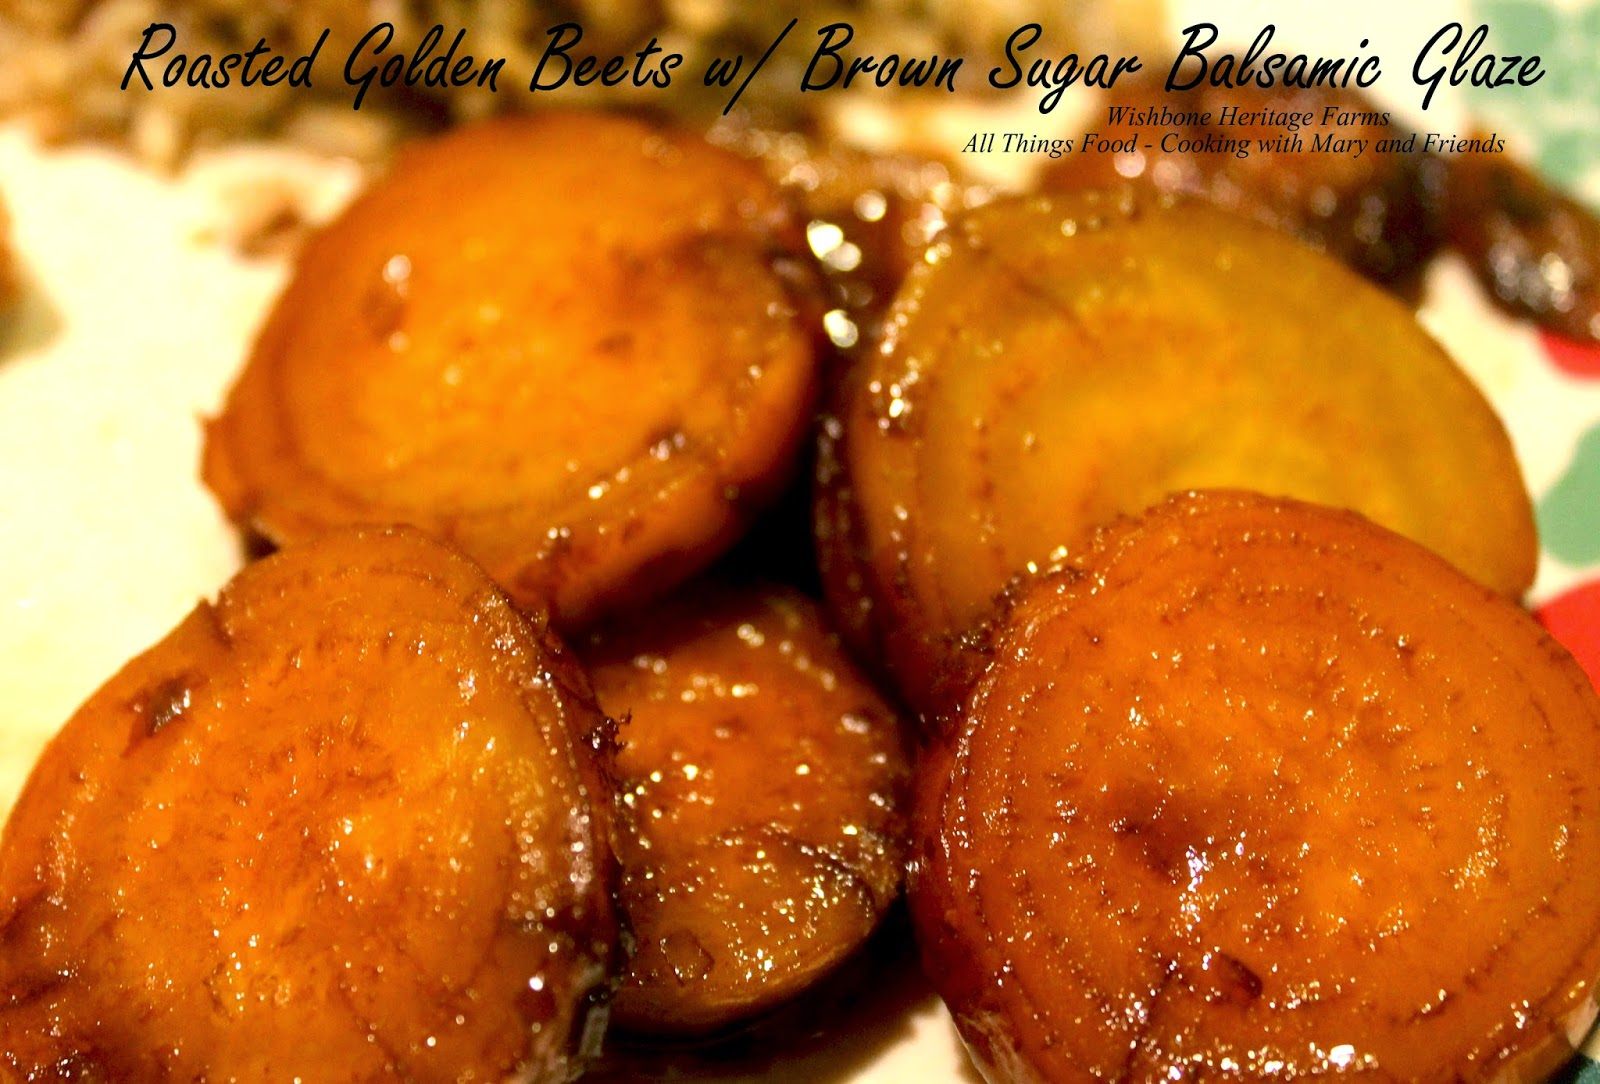 Cooking With Mary and Friends: Roasted Golden Beets with ...